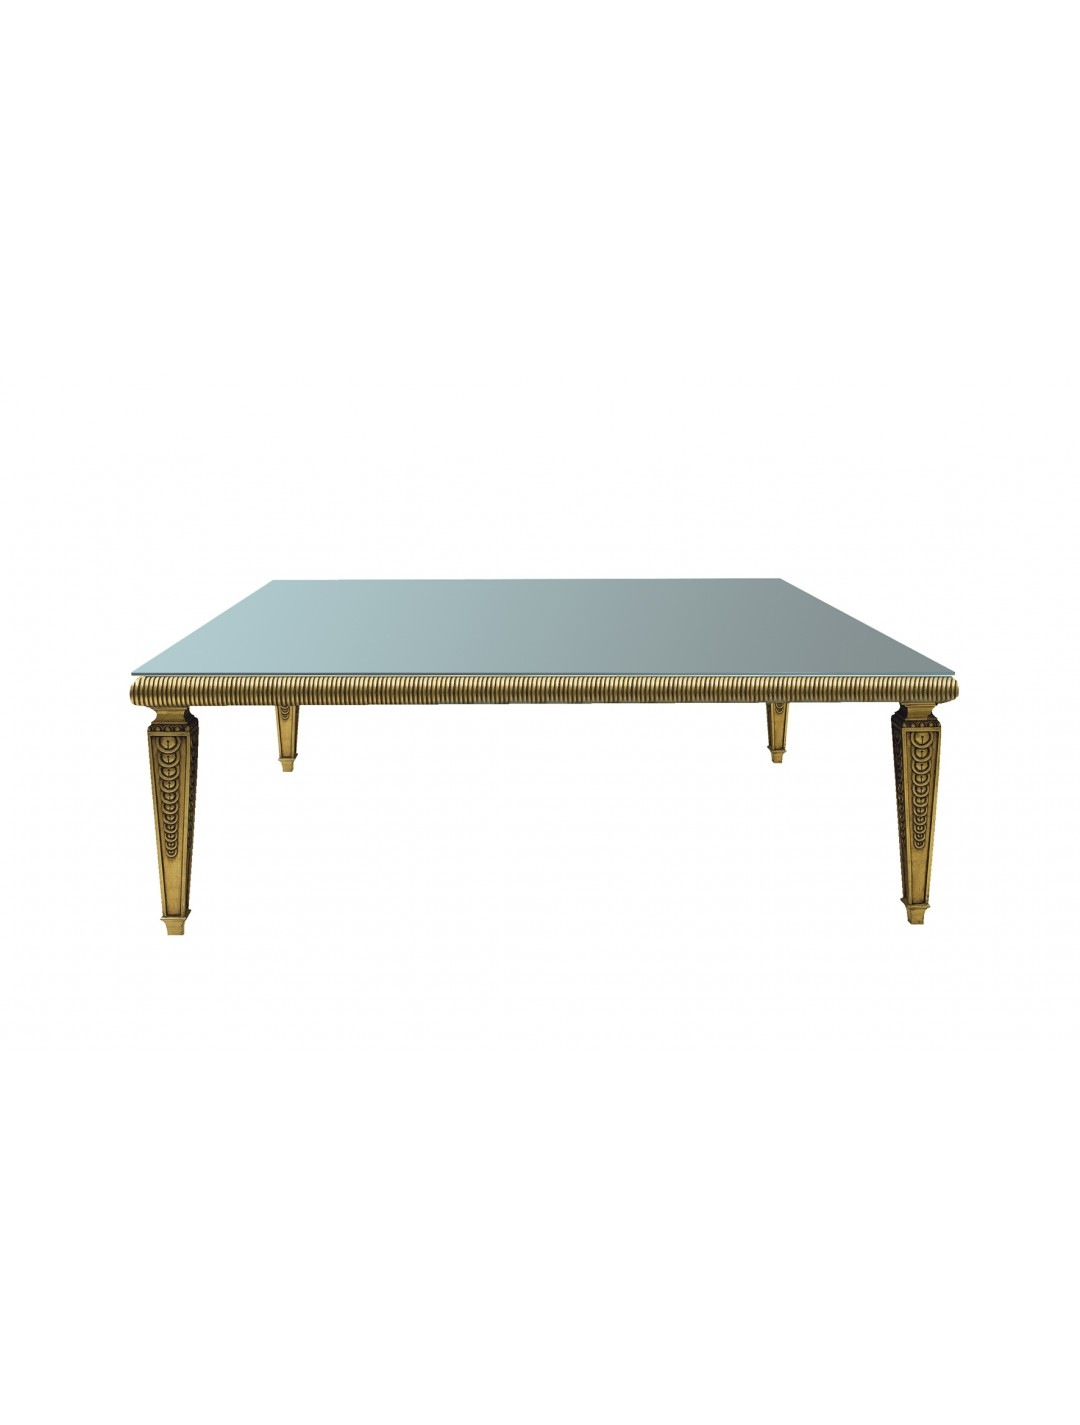 DECO SQUARE DINING TABLE, FOR BUTIRAL GLASS (NOT INCLUDED), 230*230,